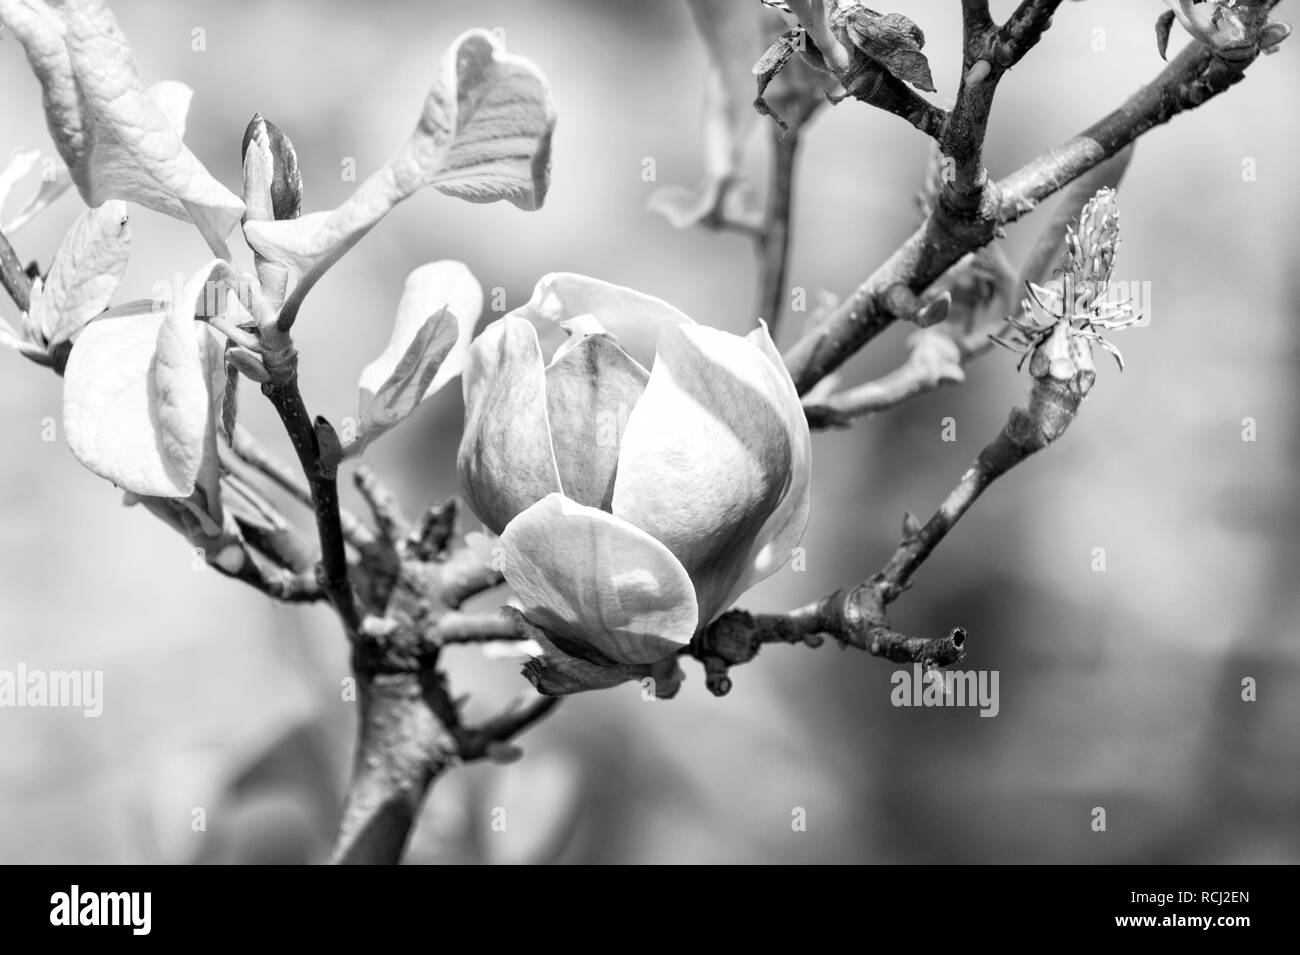 Magnolia flower bloom on blurred background. Blossom of magnolia tree on sunny day, spring flower. Spring season concept. New life awakening. Nature, beauty, environment. - Stock Image